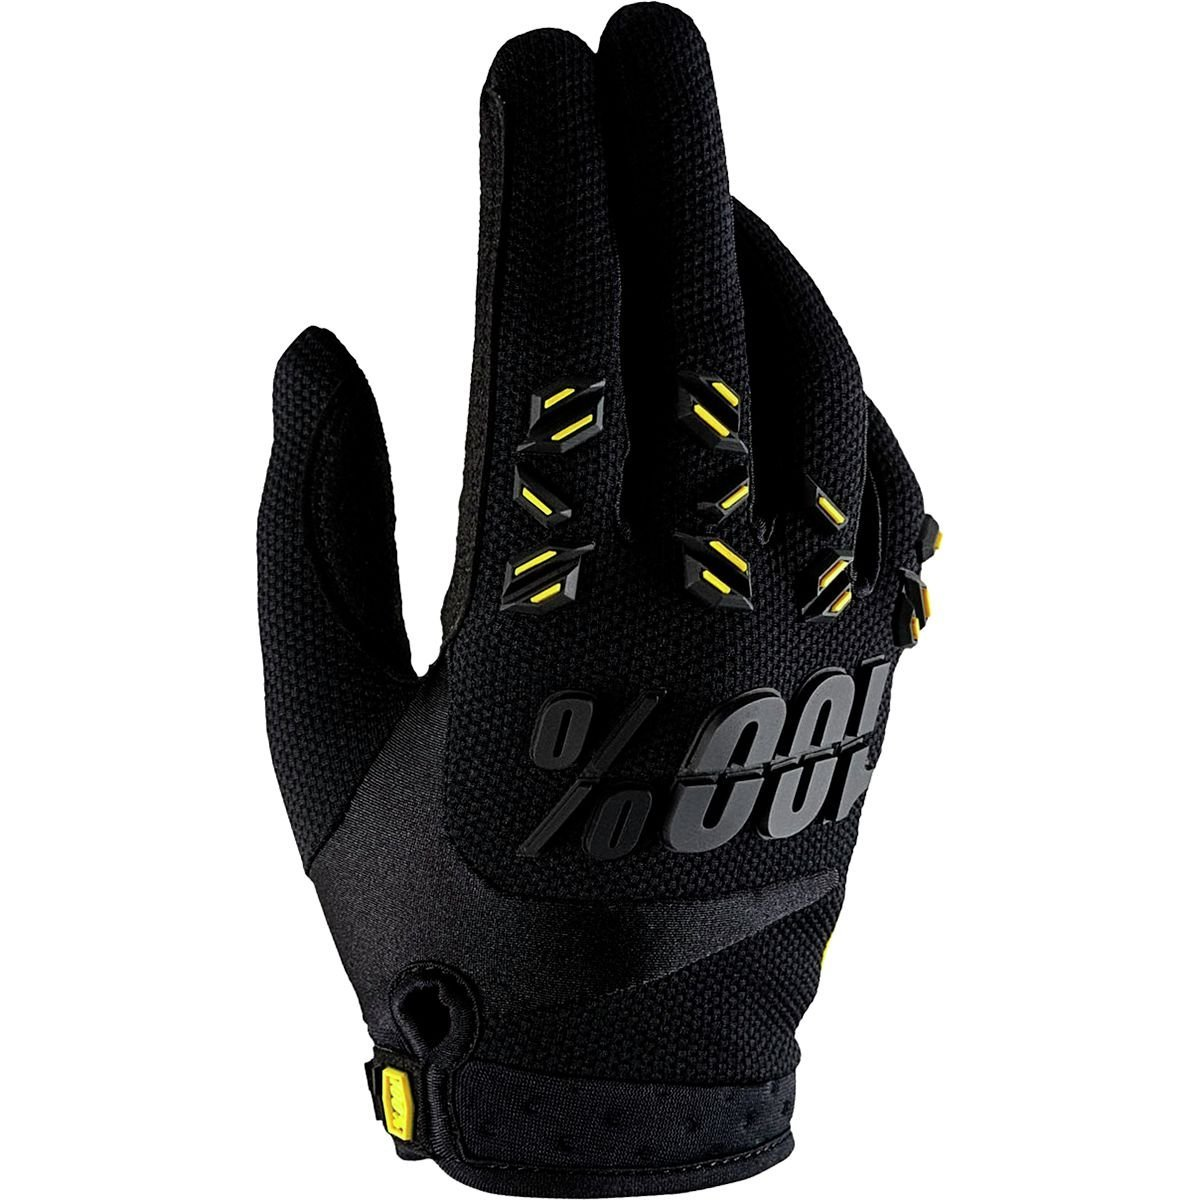 % AirMatic Gloves Black/Black, M - Men's, Material: [backing] polyester mesh with TPR protective studs, [palm] dual-layer Clarino By 100 Ship from US